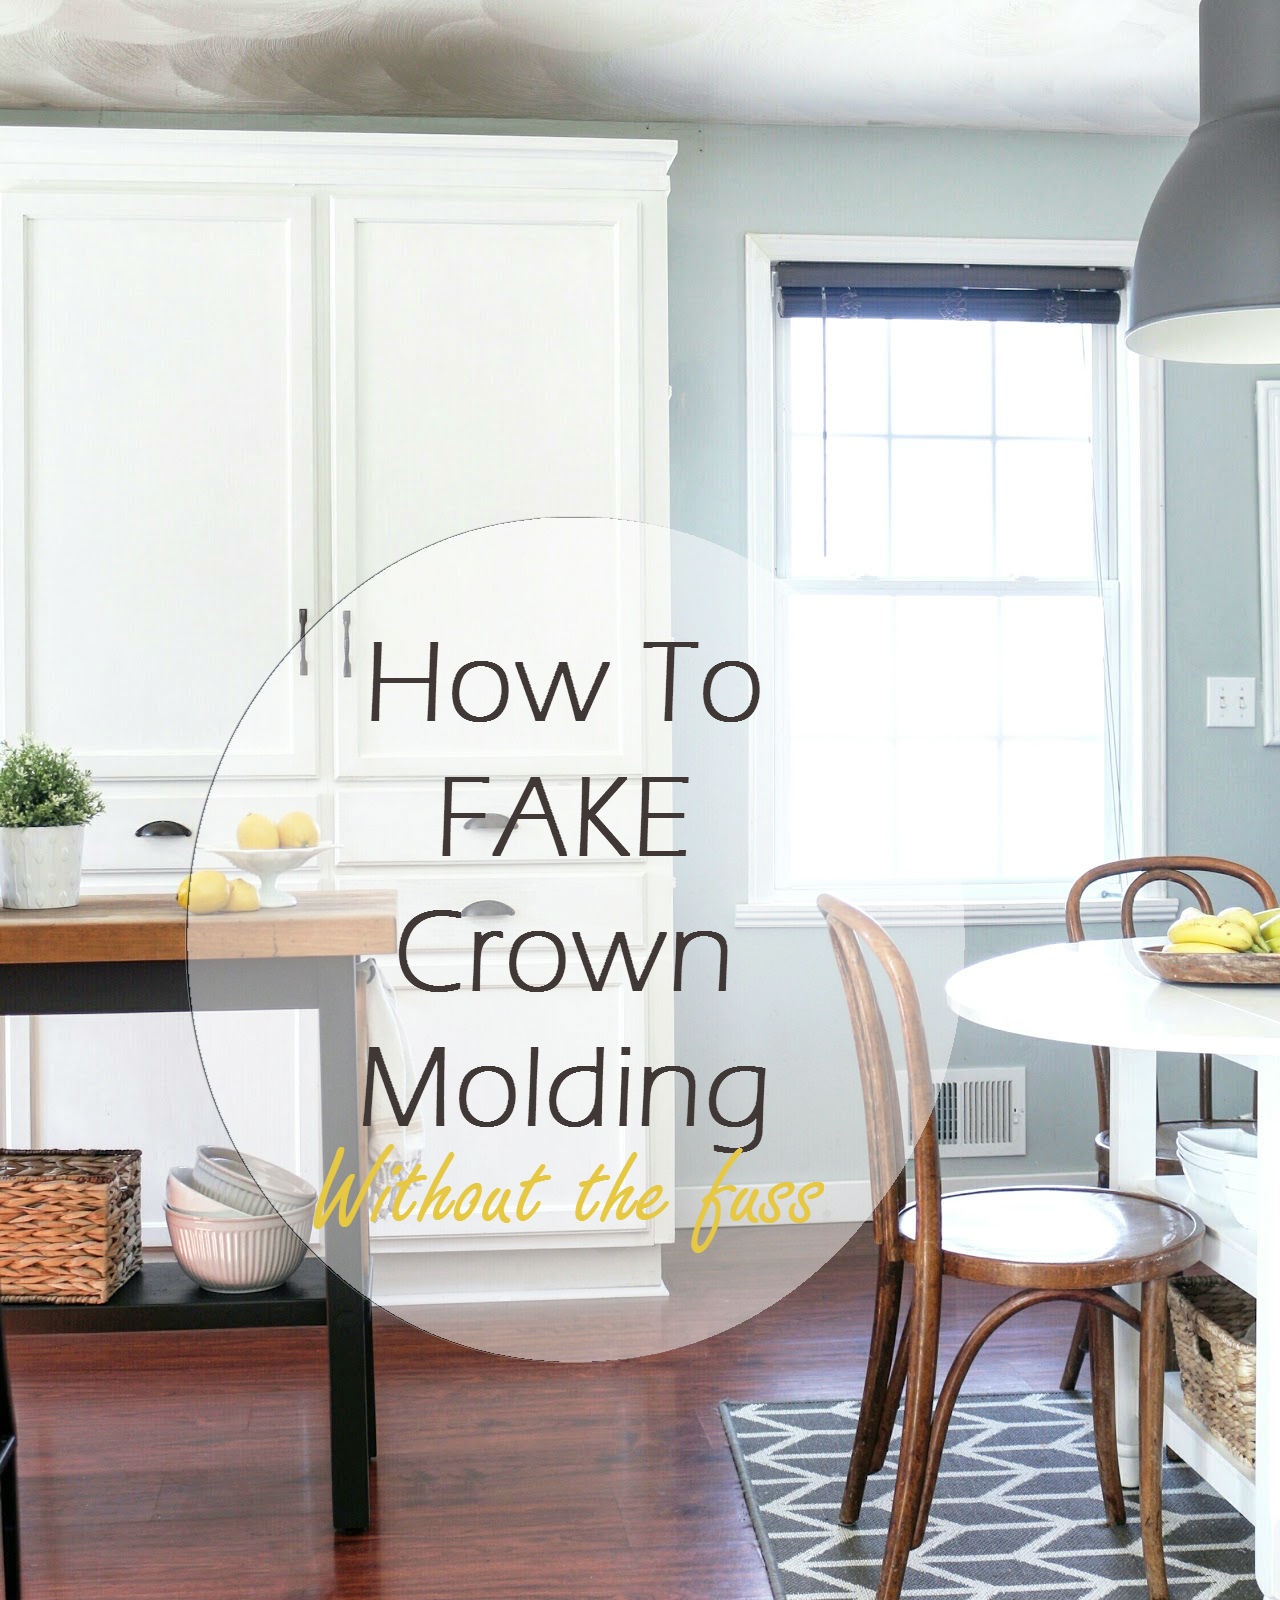 My DIY Kitchen  Cabinet Crown Molding  How to Fake the Look Without the Fuss. My DIY Kitchen  Cabinet Crown Molding  How to Fake the Look